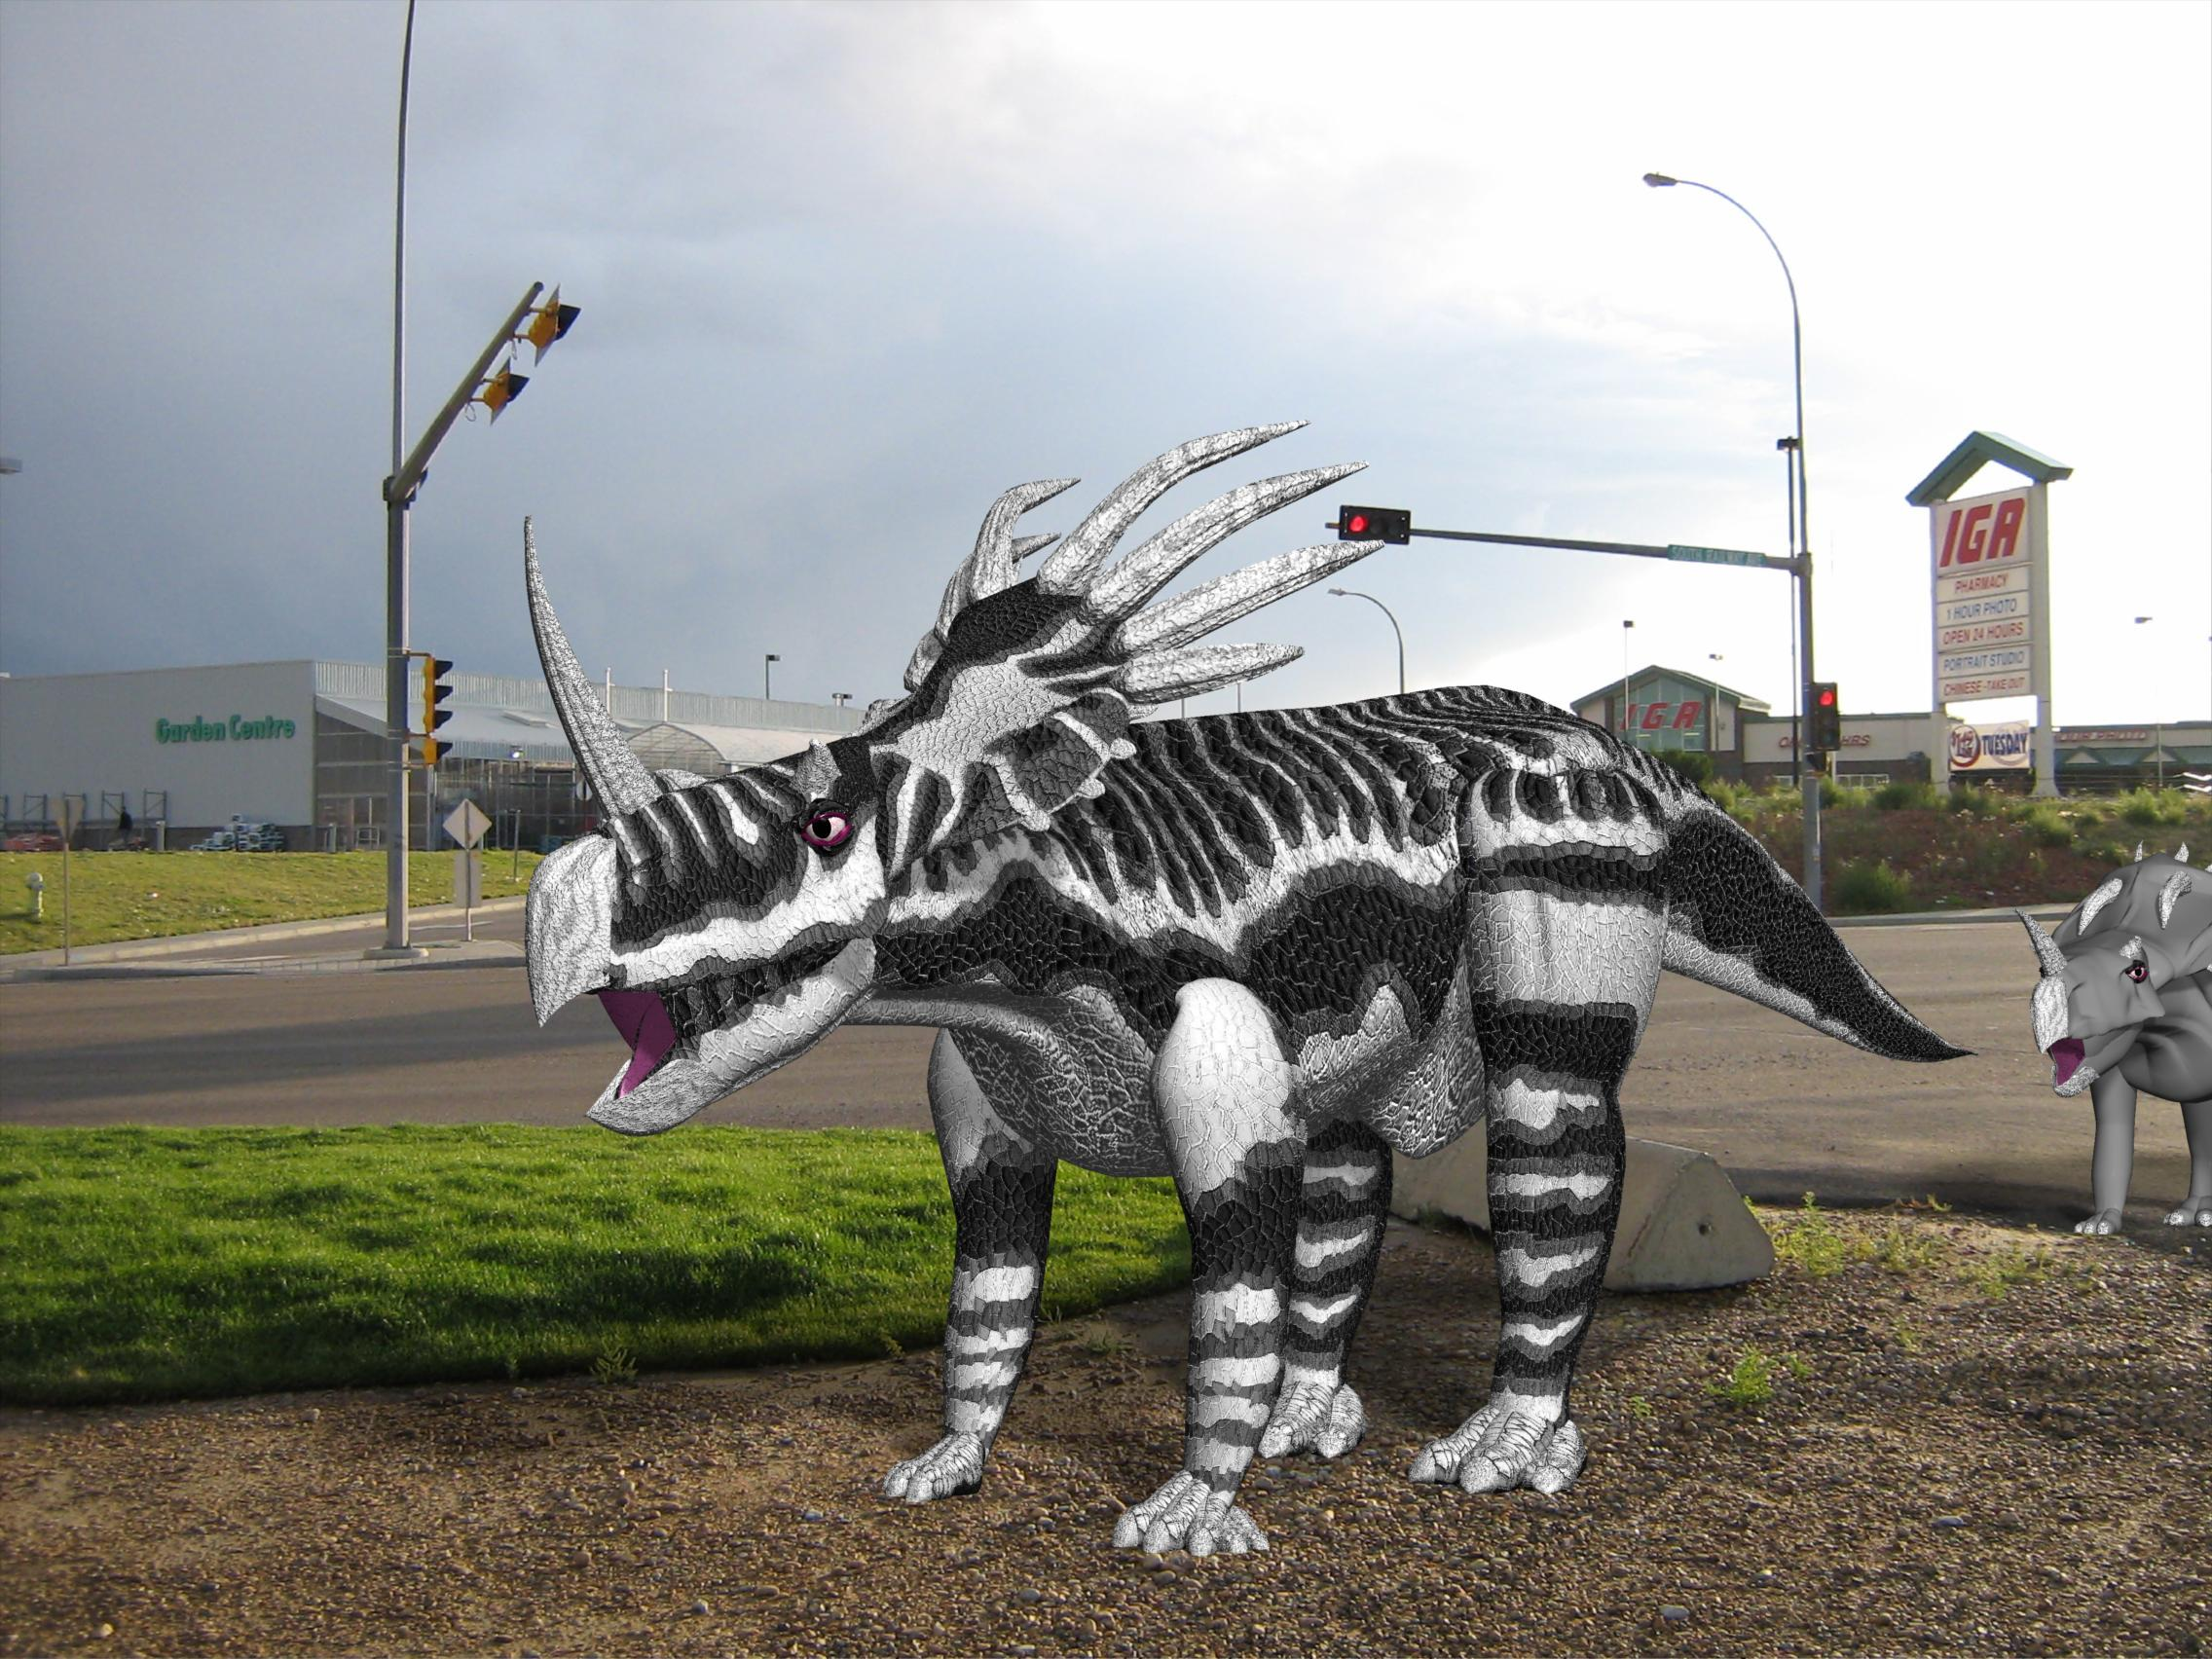 Black and White dinosaurs follow up | Dave Hone's ...